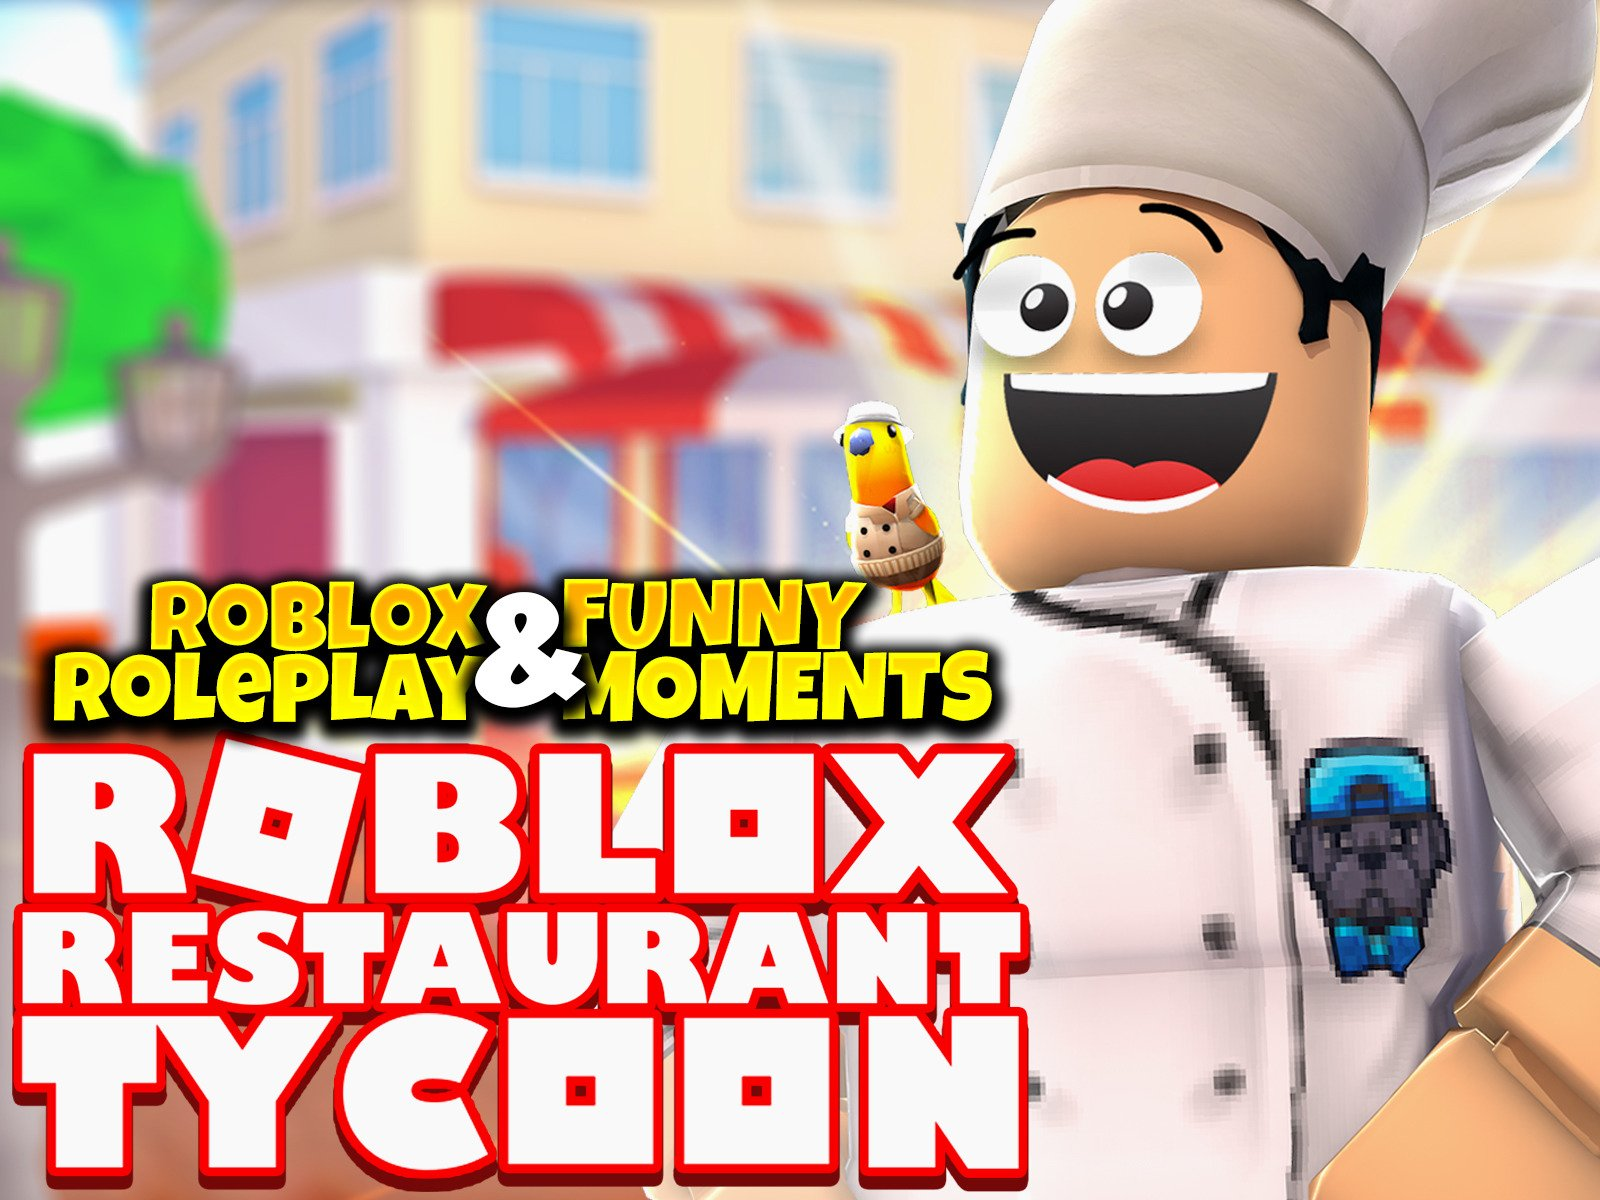 Restaurant Tycoon (Roblox Roleplay & Funny Moments) on Amazon Prime Video UK